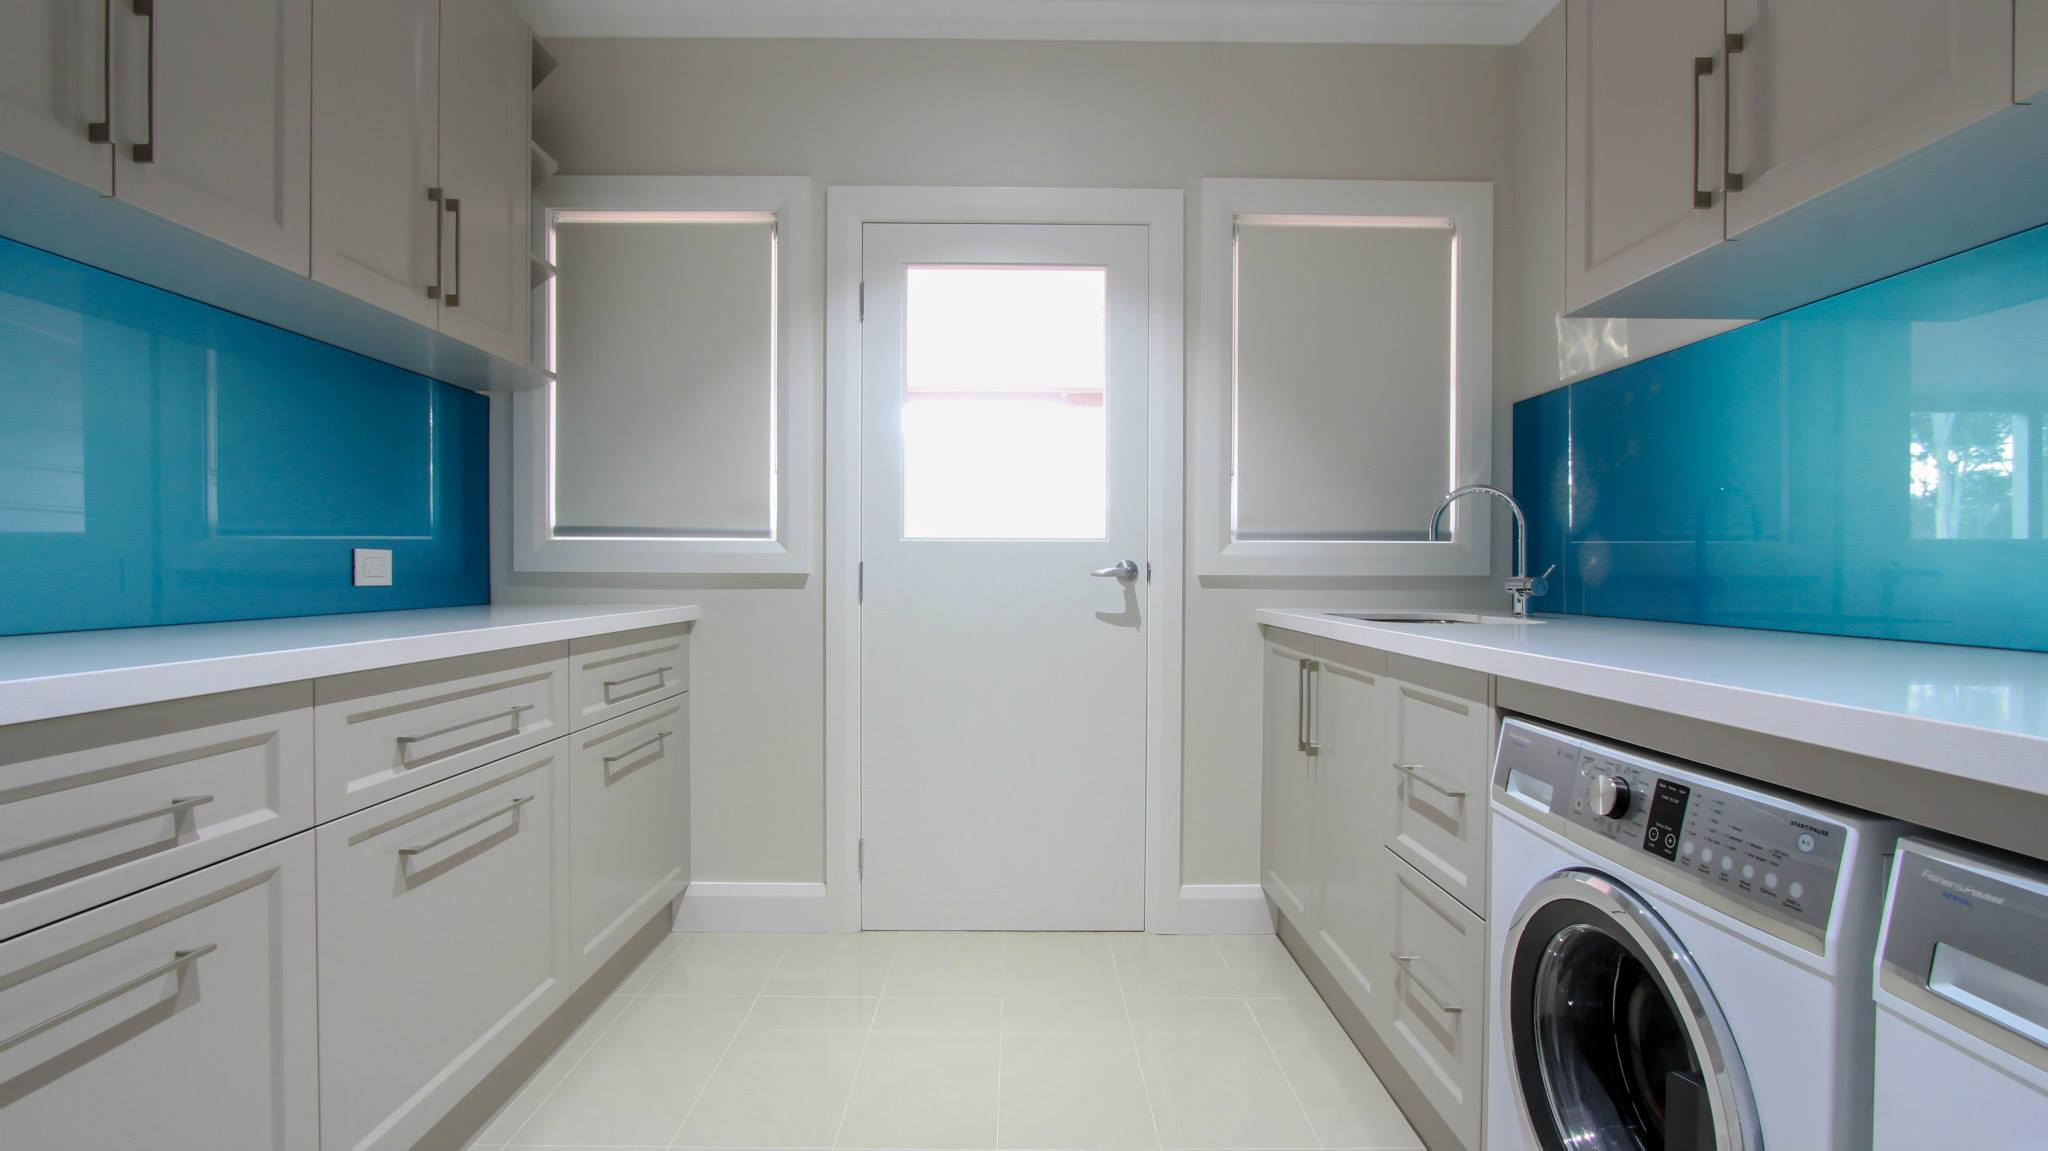 Laundry j d custom cabinetry we design and build laundry cabinets to suit your style and needs whether you need new cabinets for your existing laundry or a new fit out we can create a solutioingenieria Images